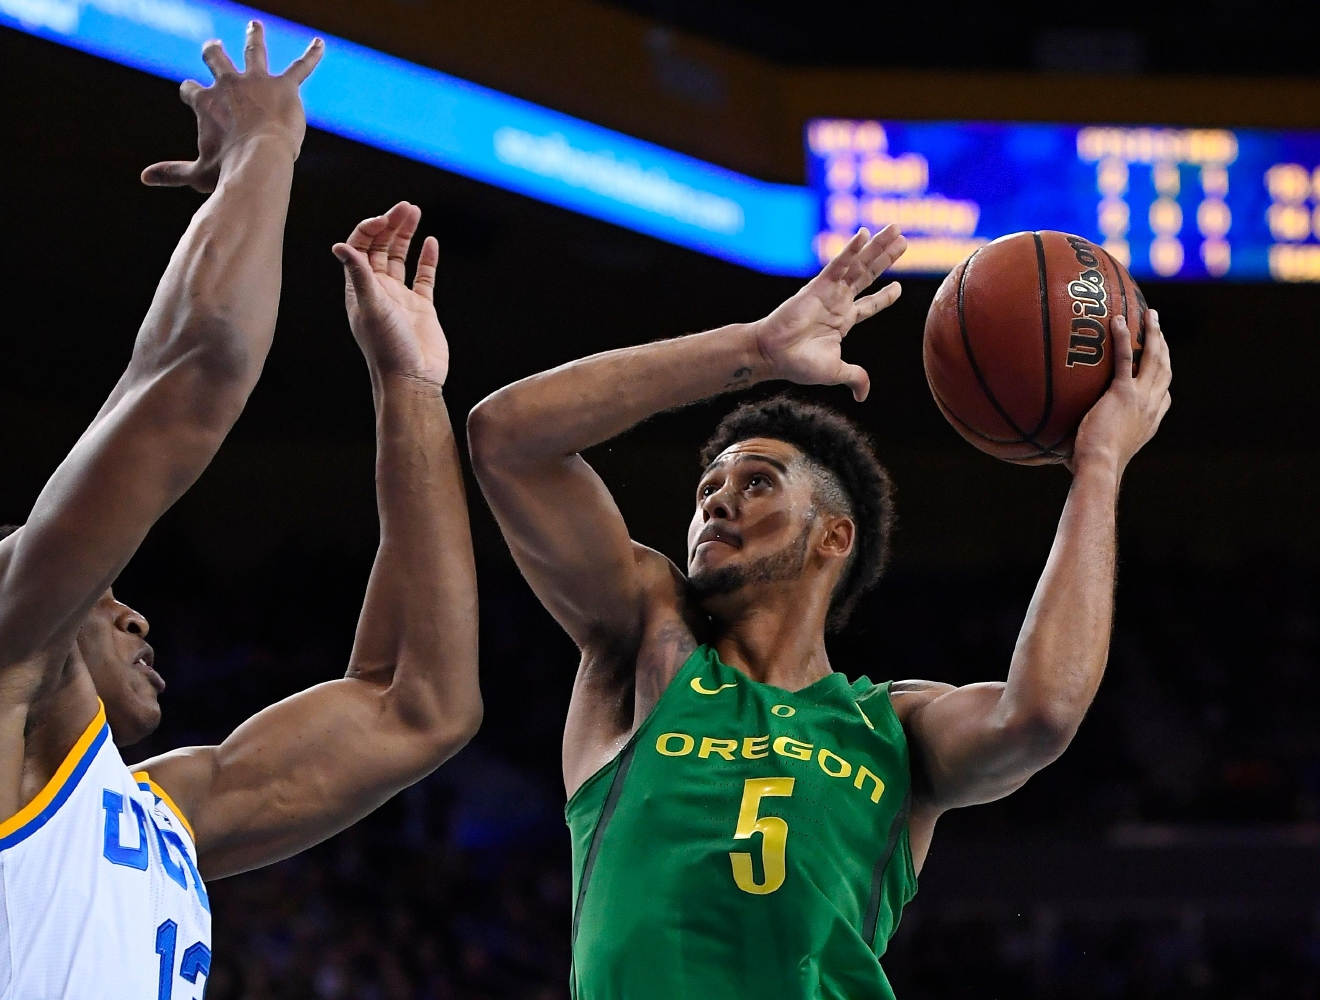 Oregon guard Tyler Dorsey, right, shoots as UCLA forward Ike Anigbogu defends during the first half of an NCAA college basketball game, Thursday, Feb. 9, 2017, in Los Angeles. (AP Photo/Mark J. Terrill)